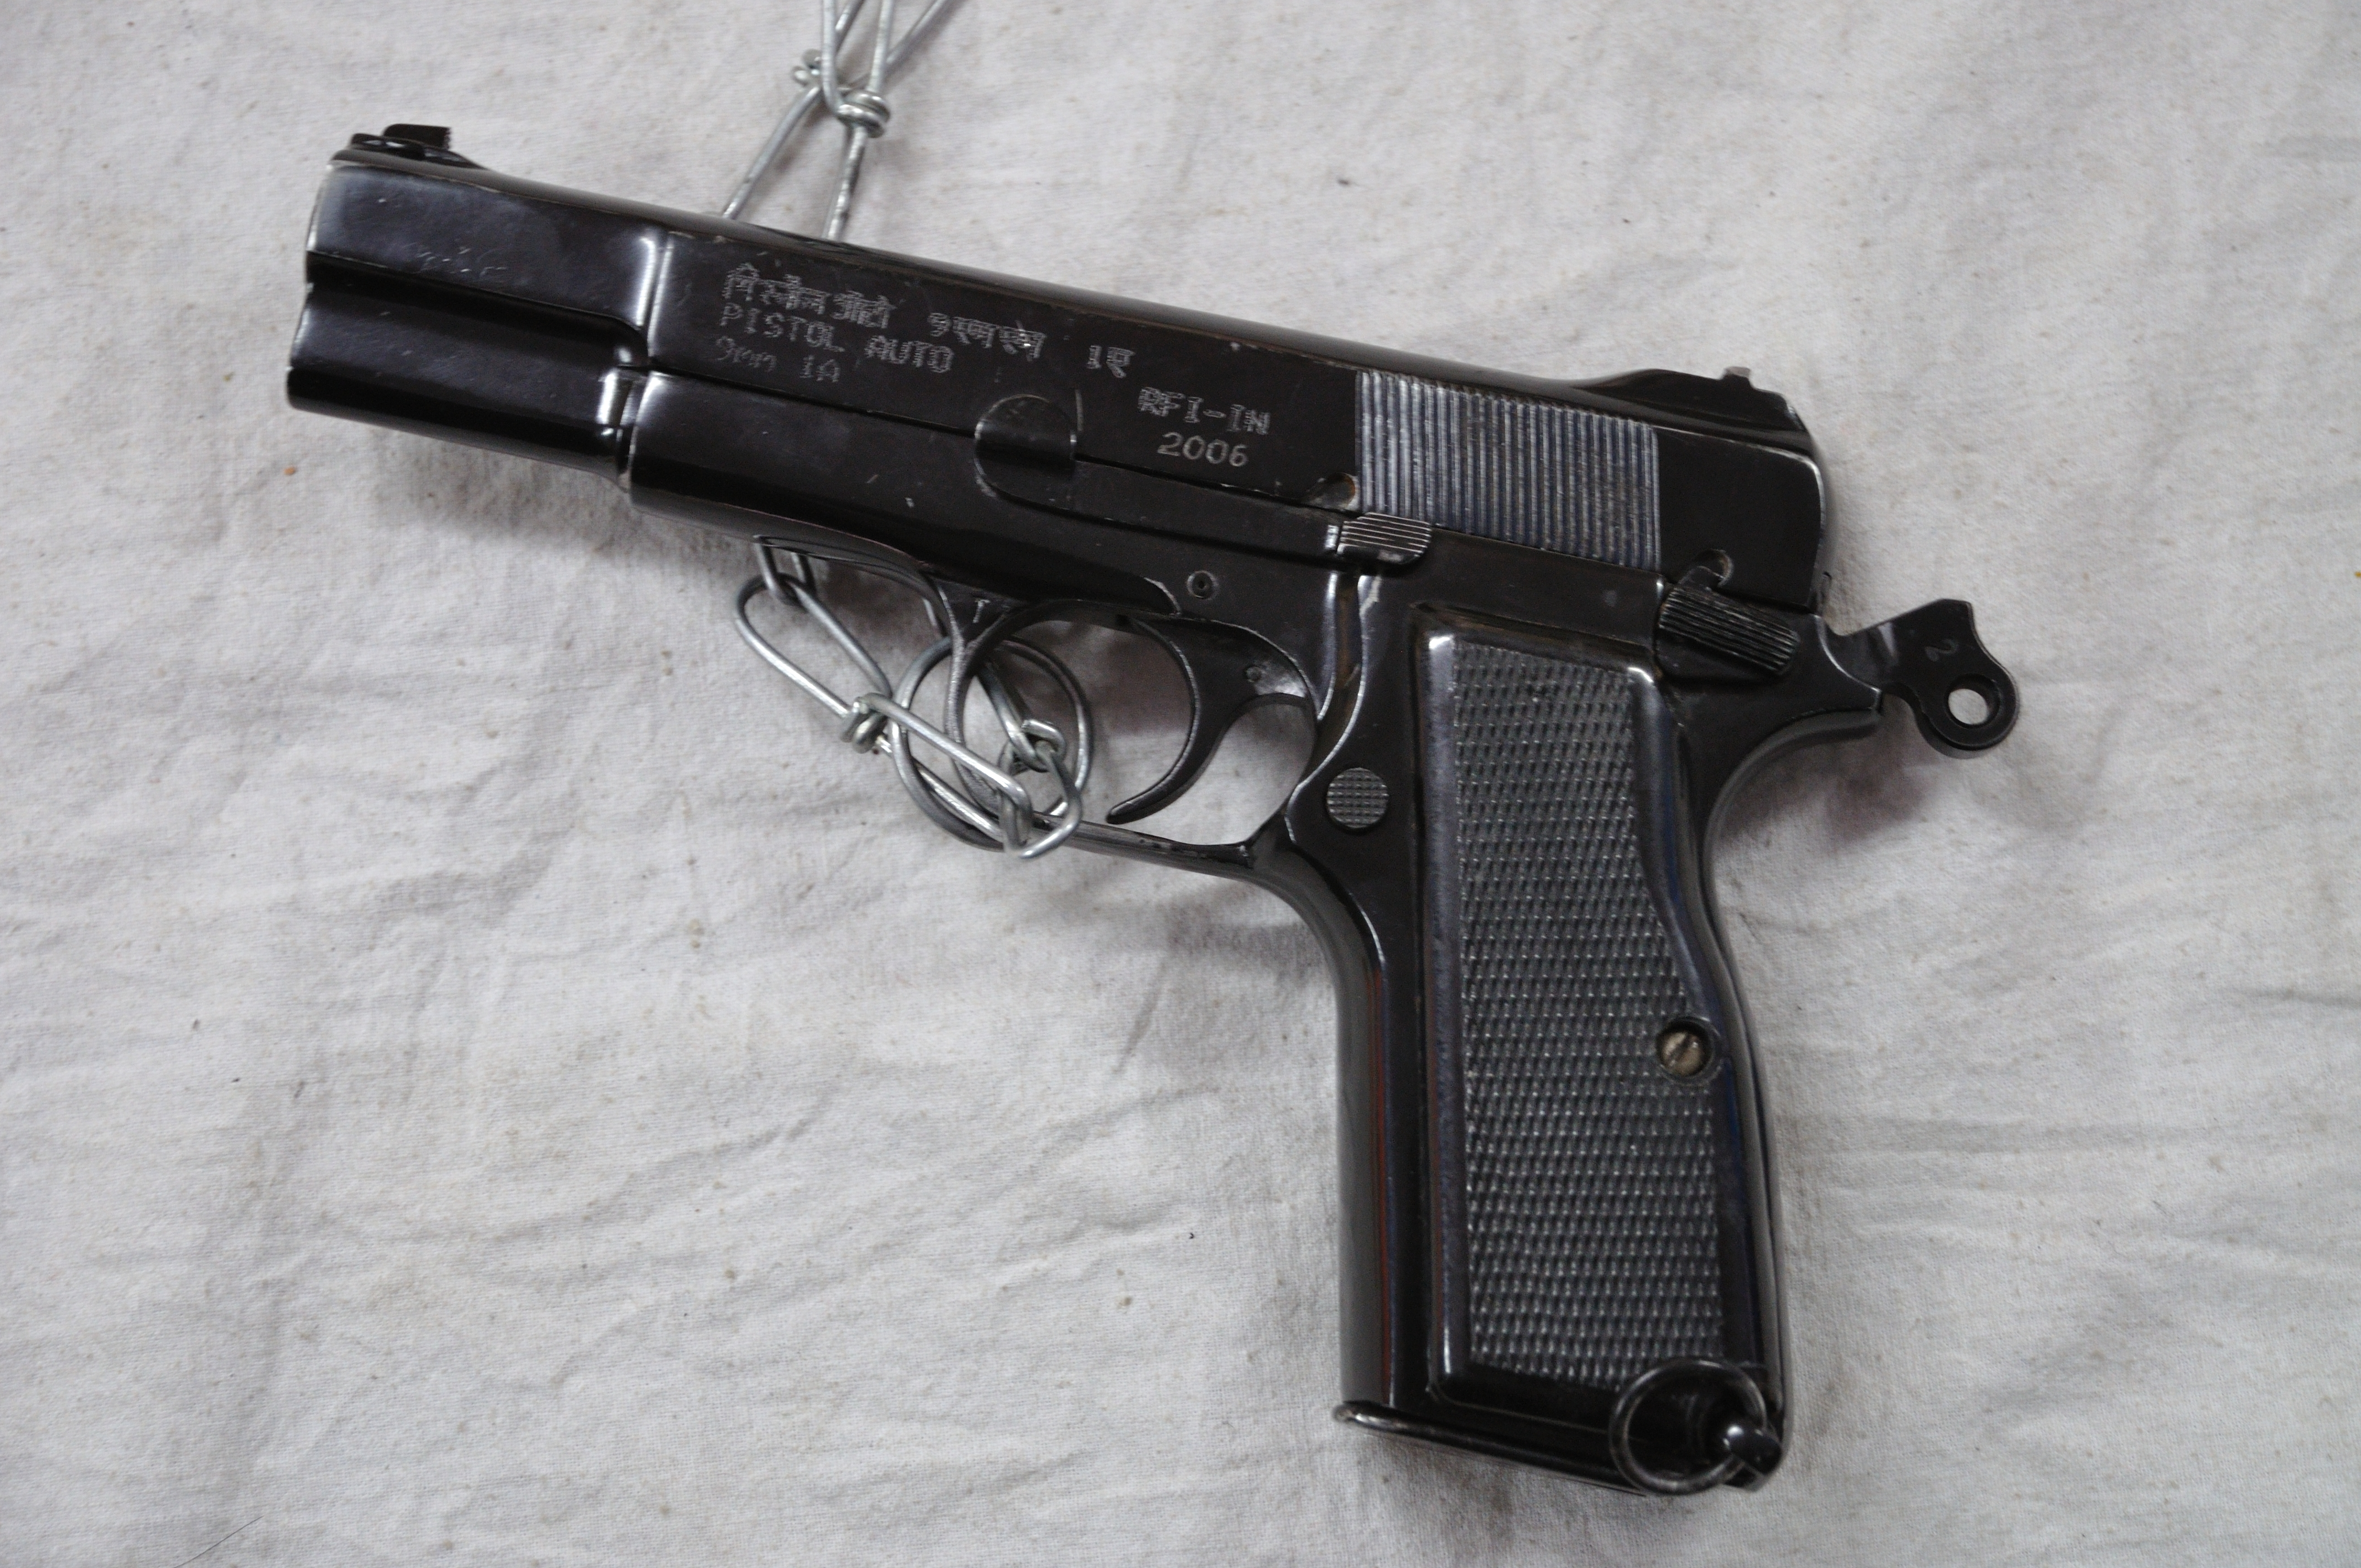 Pistol Auto 9mm 1A - Wikipedia